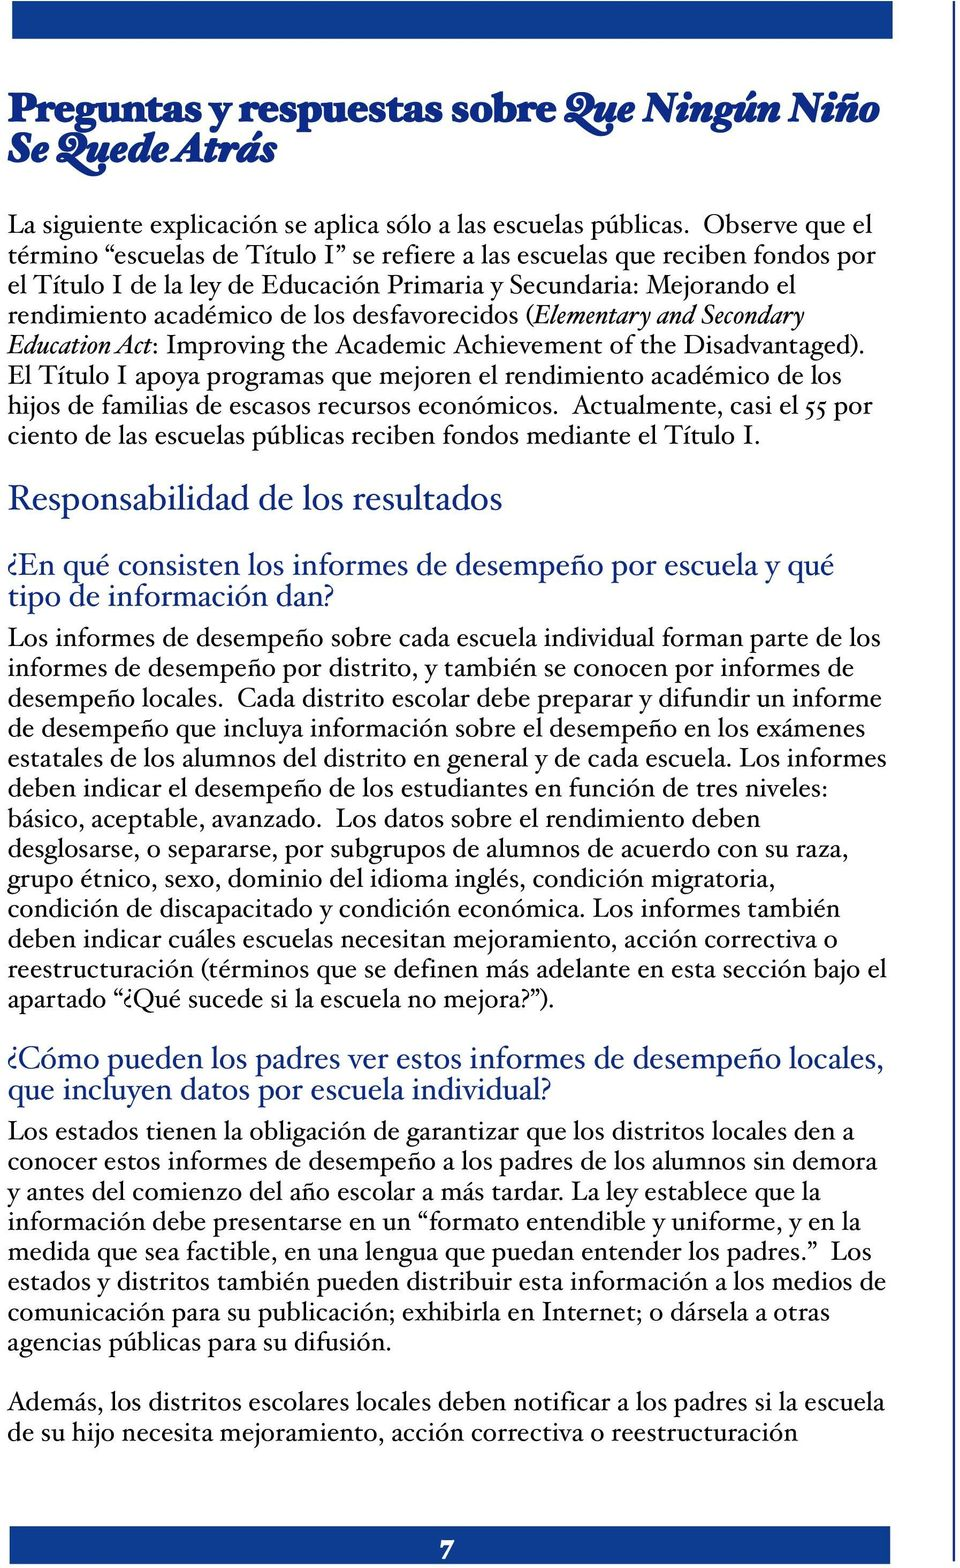 desfavorecidos (Elementary and Secondary Education Act: Improving the Academic Achievement of the Disadvantaged).